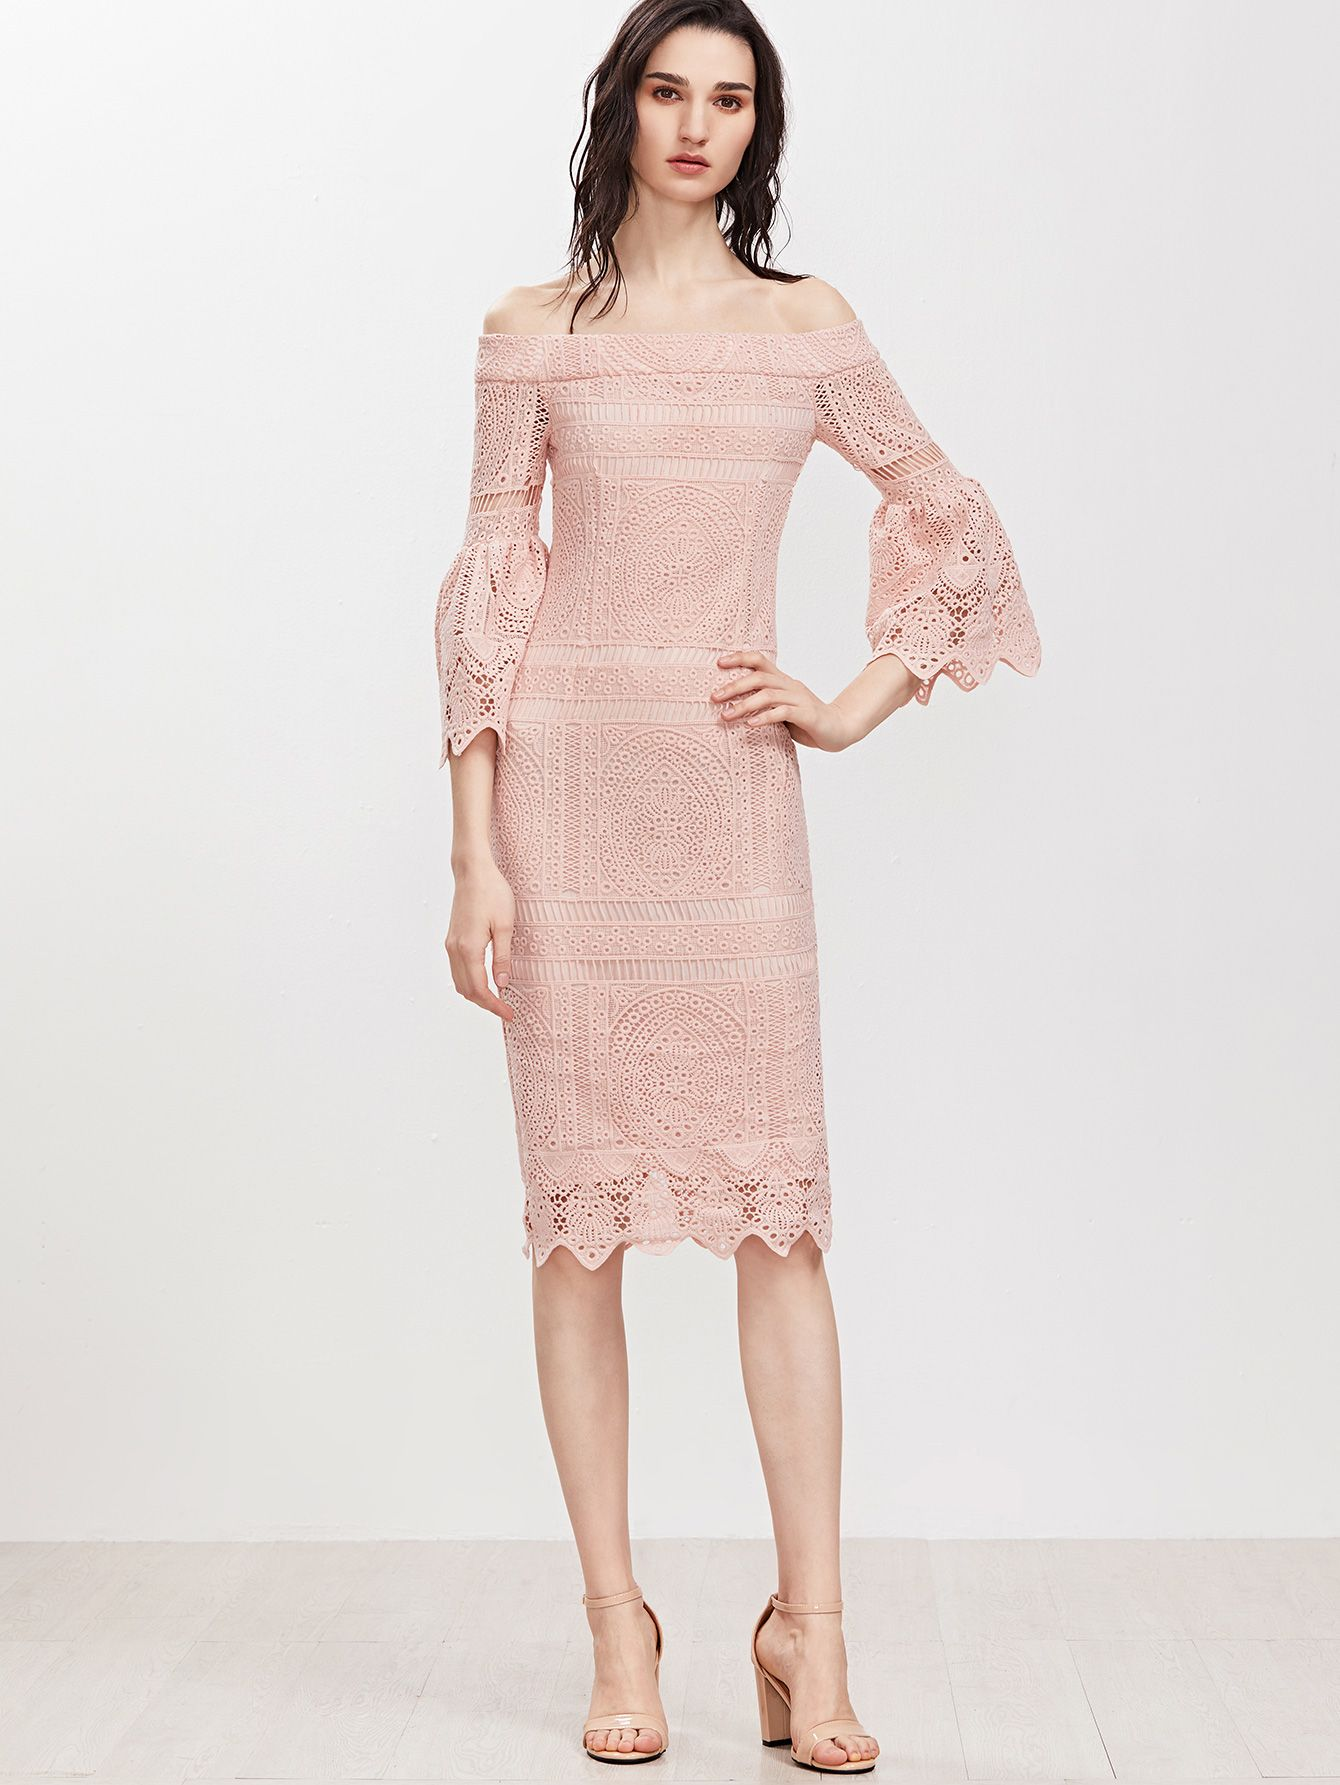 Shop Pink f The Shoulder Bell Sleeve Embroidered Crochet Overlay Dress online SheIn offers Pink f The Shoulder Bell Sleeve Embroidered Crochet Overlay